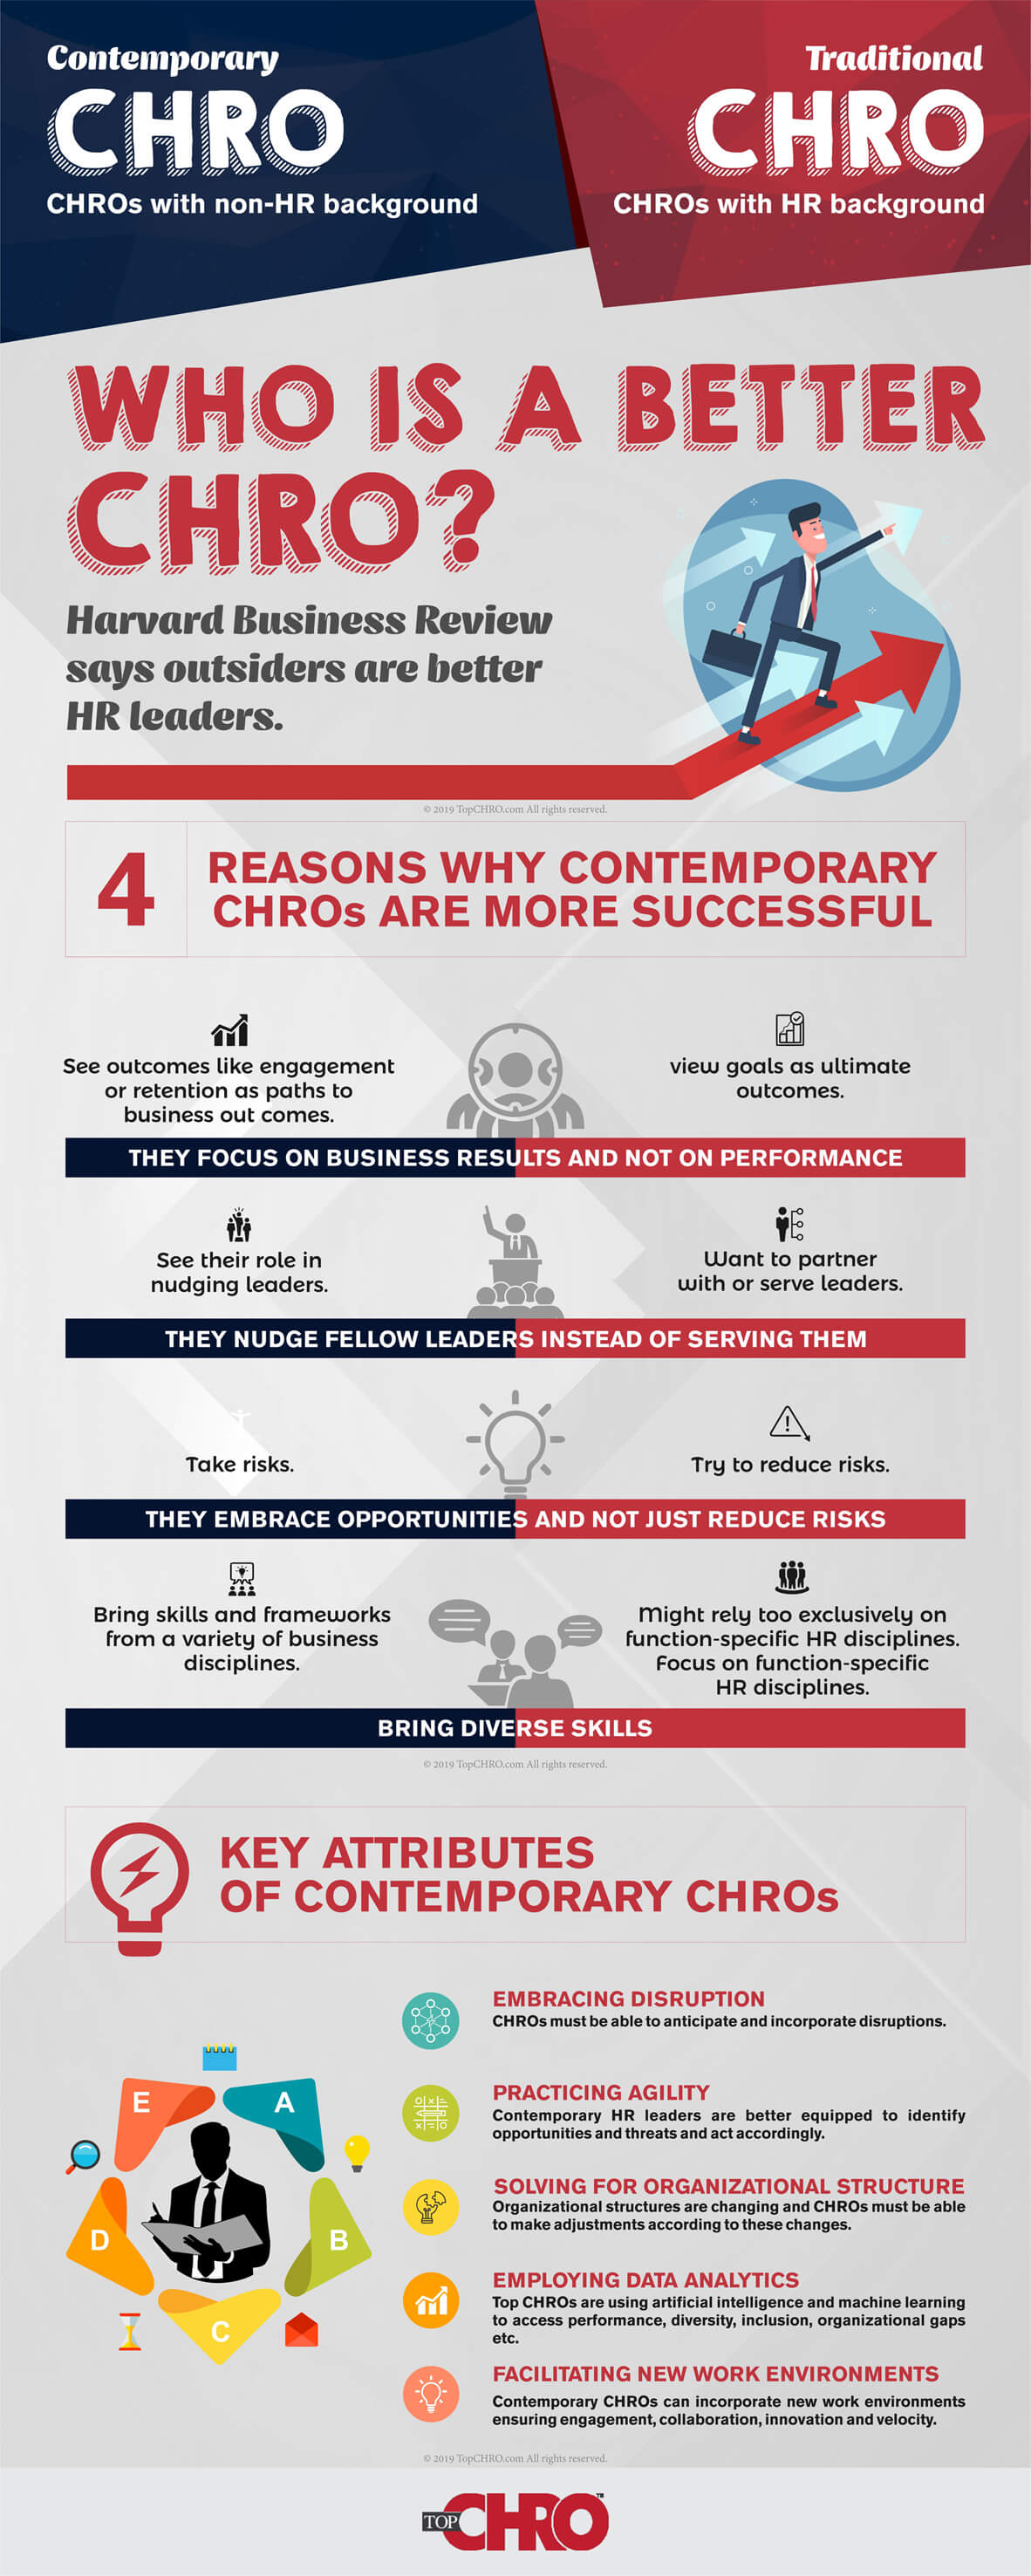 who-is-a-better-chro-infographic-plaza